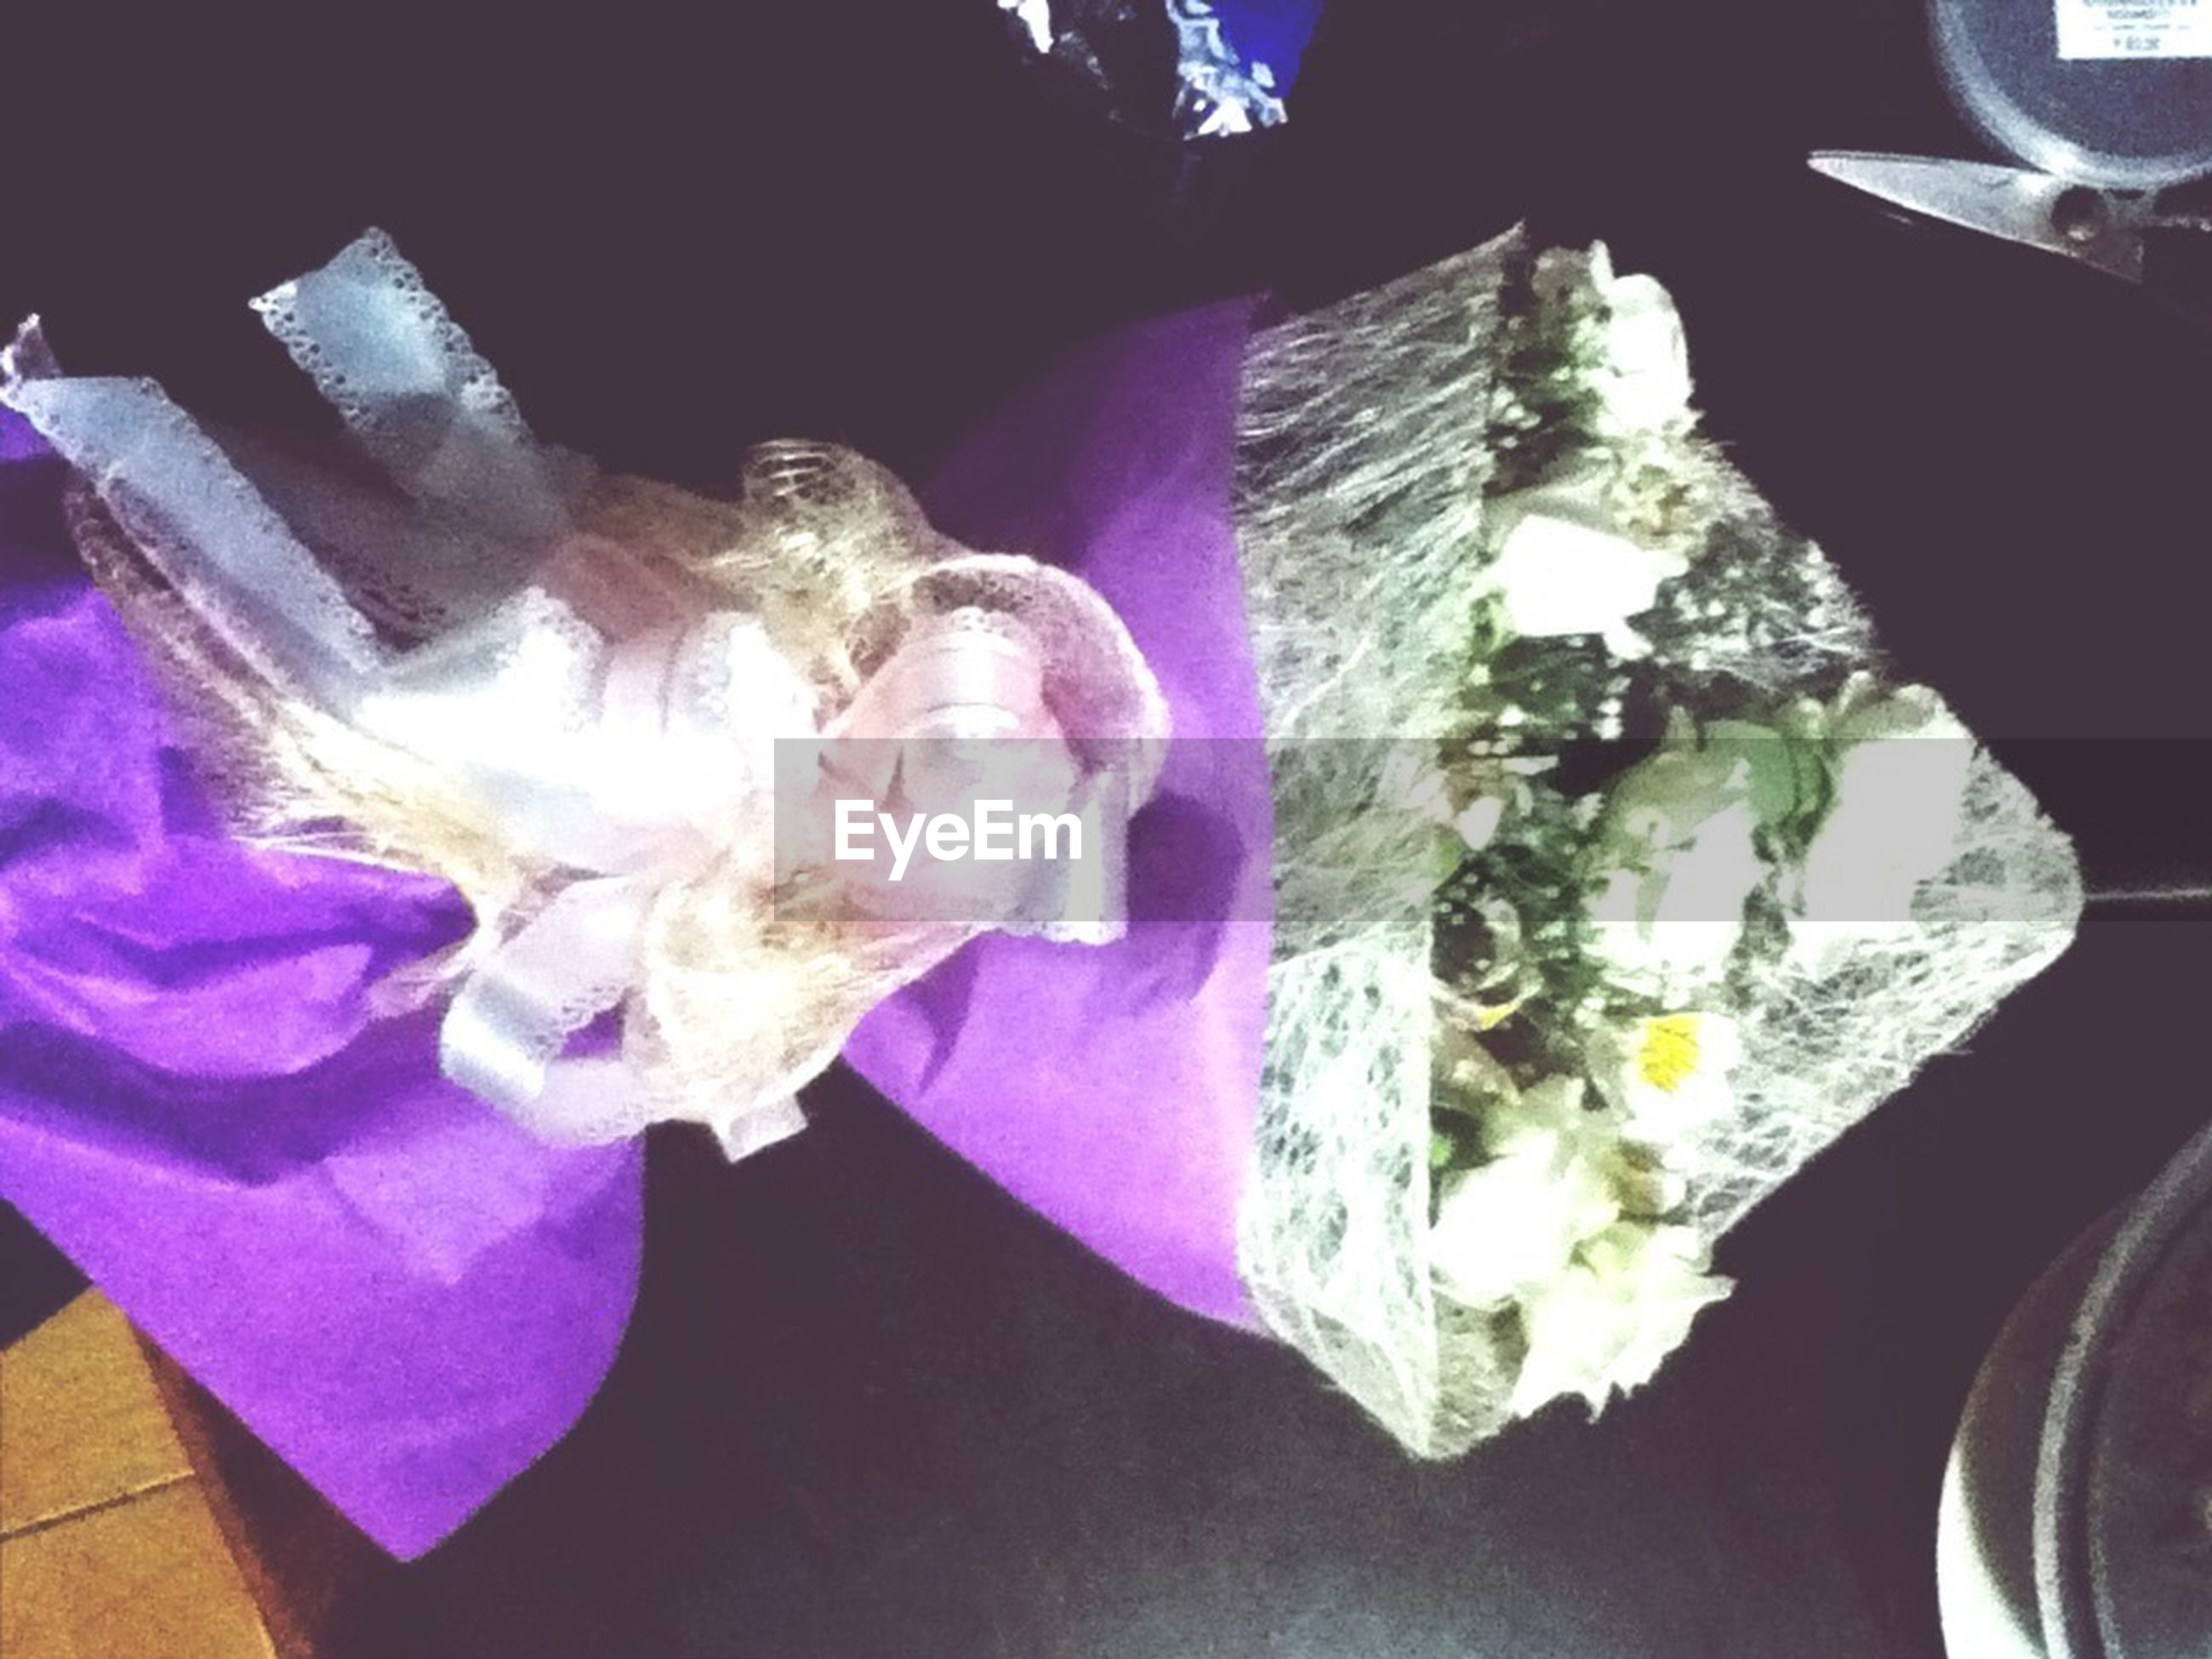 indoors, high angle view, close-up, blue, freshness, no people, day, still life, table, sunlight, transportation, flower, water, reflection, part of, car, purple, mode of transport, glass - material